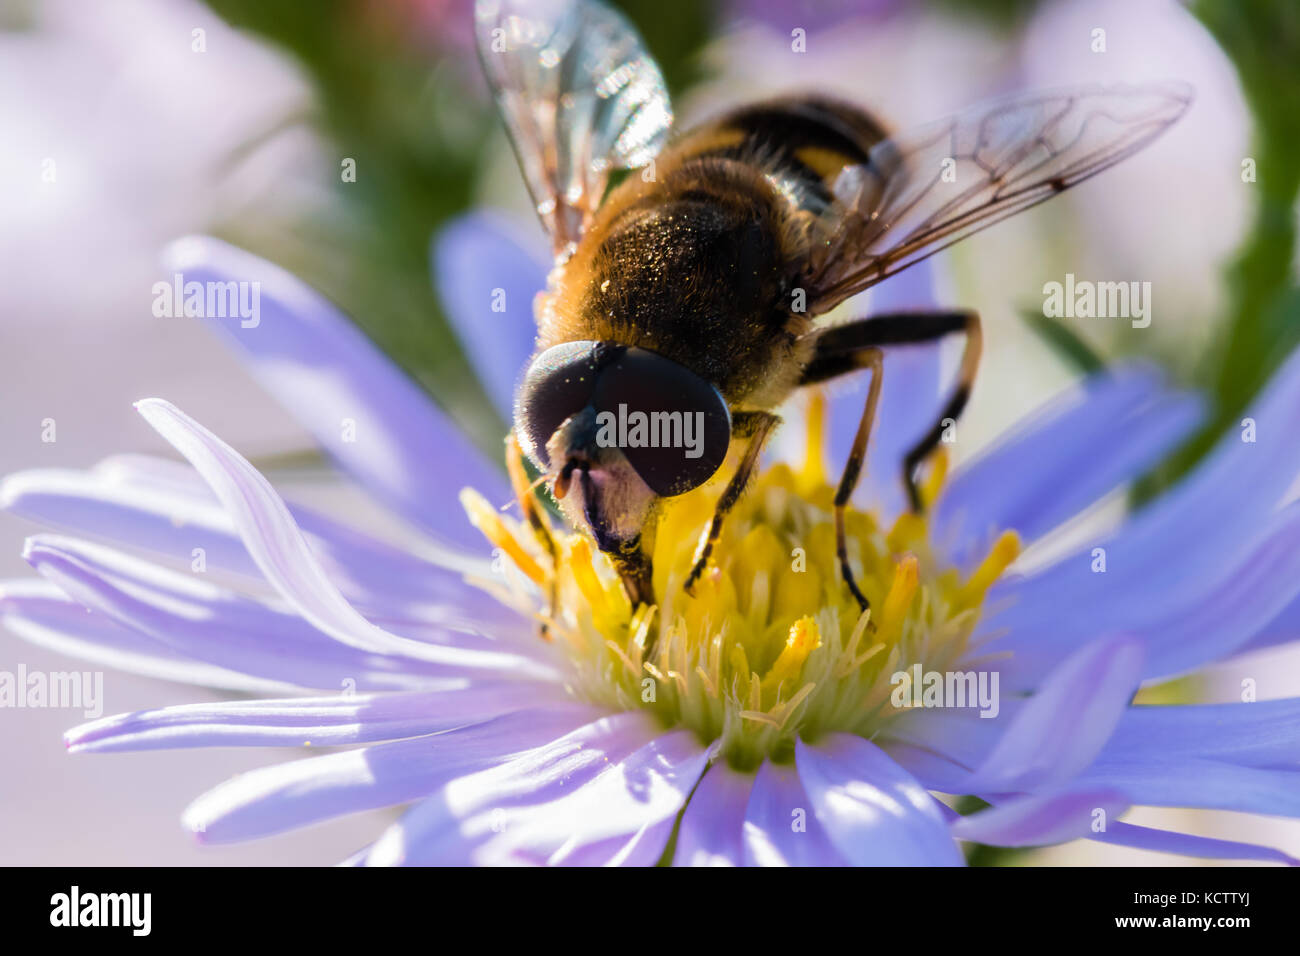 The small wasp sitting on a flower (Aster amellus) and feeding on nectar.  Close-up with selective focus. - Stock Image